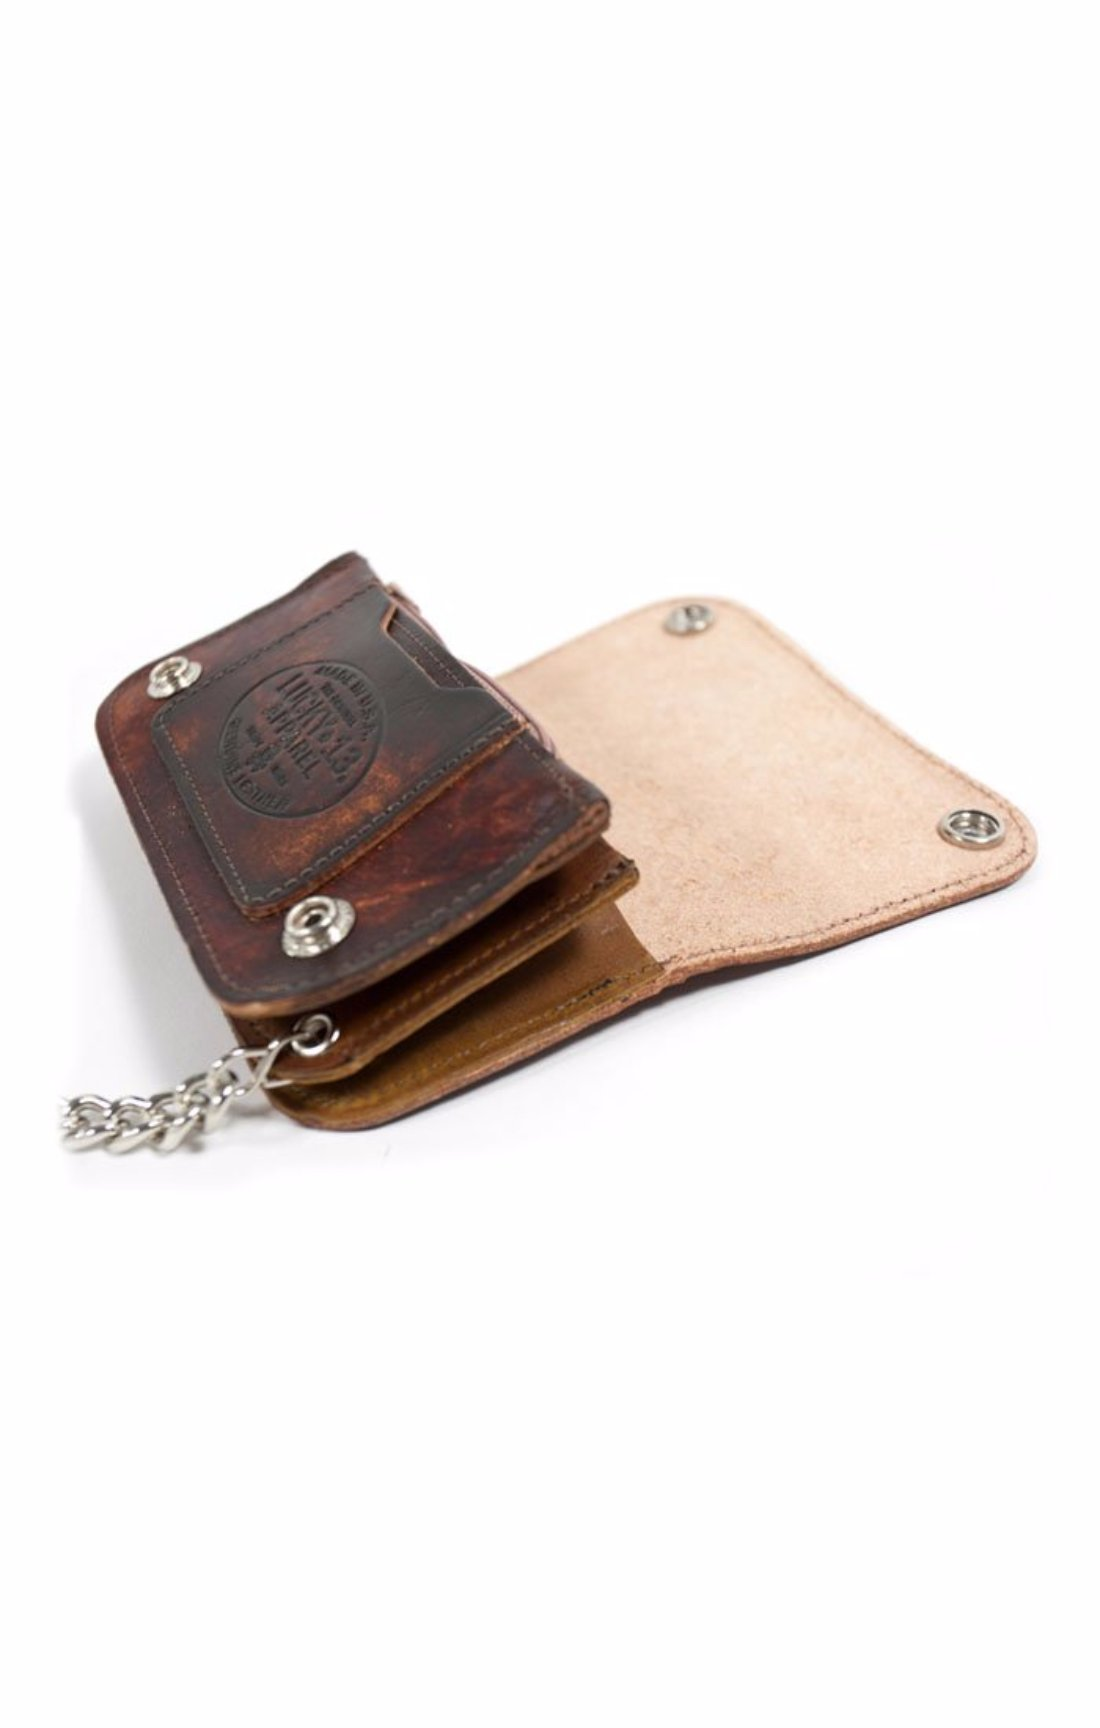 The DEATH RACER Wallet